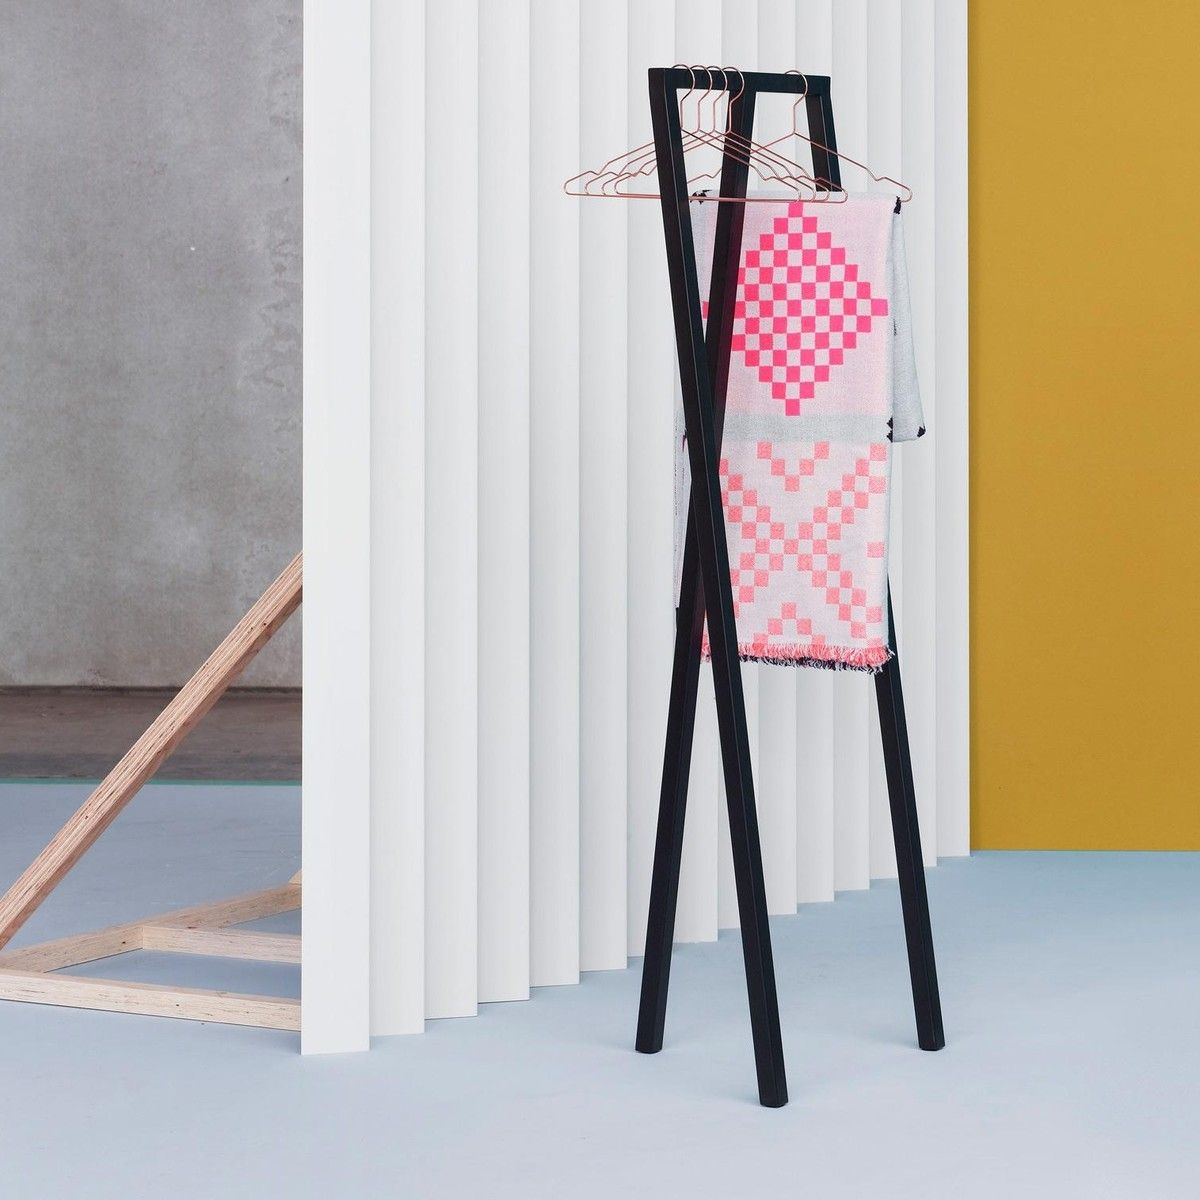 home aliexpress organizer in cloth on closet without sold functional com alibaba group cover clothes stand garden rack wardrobe shelf garment racks holders from storage item hanger out multi